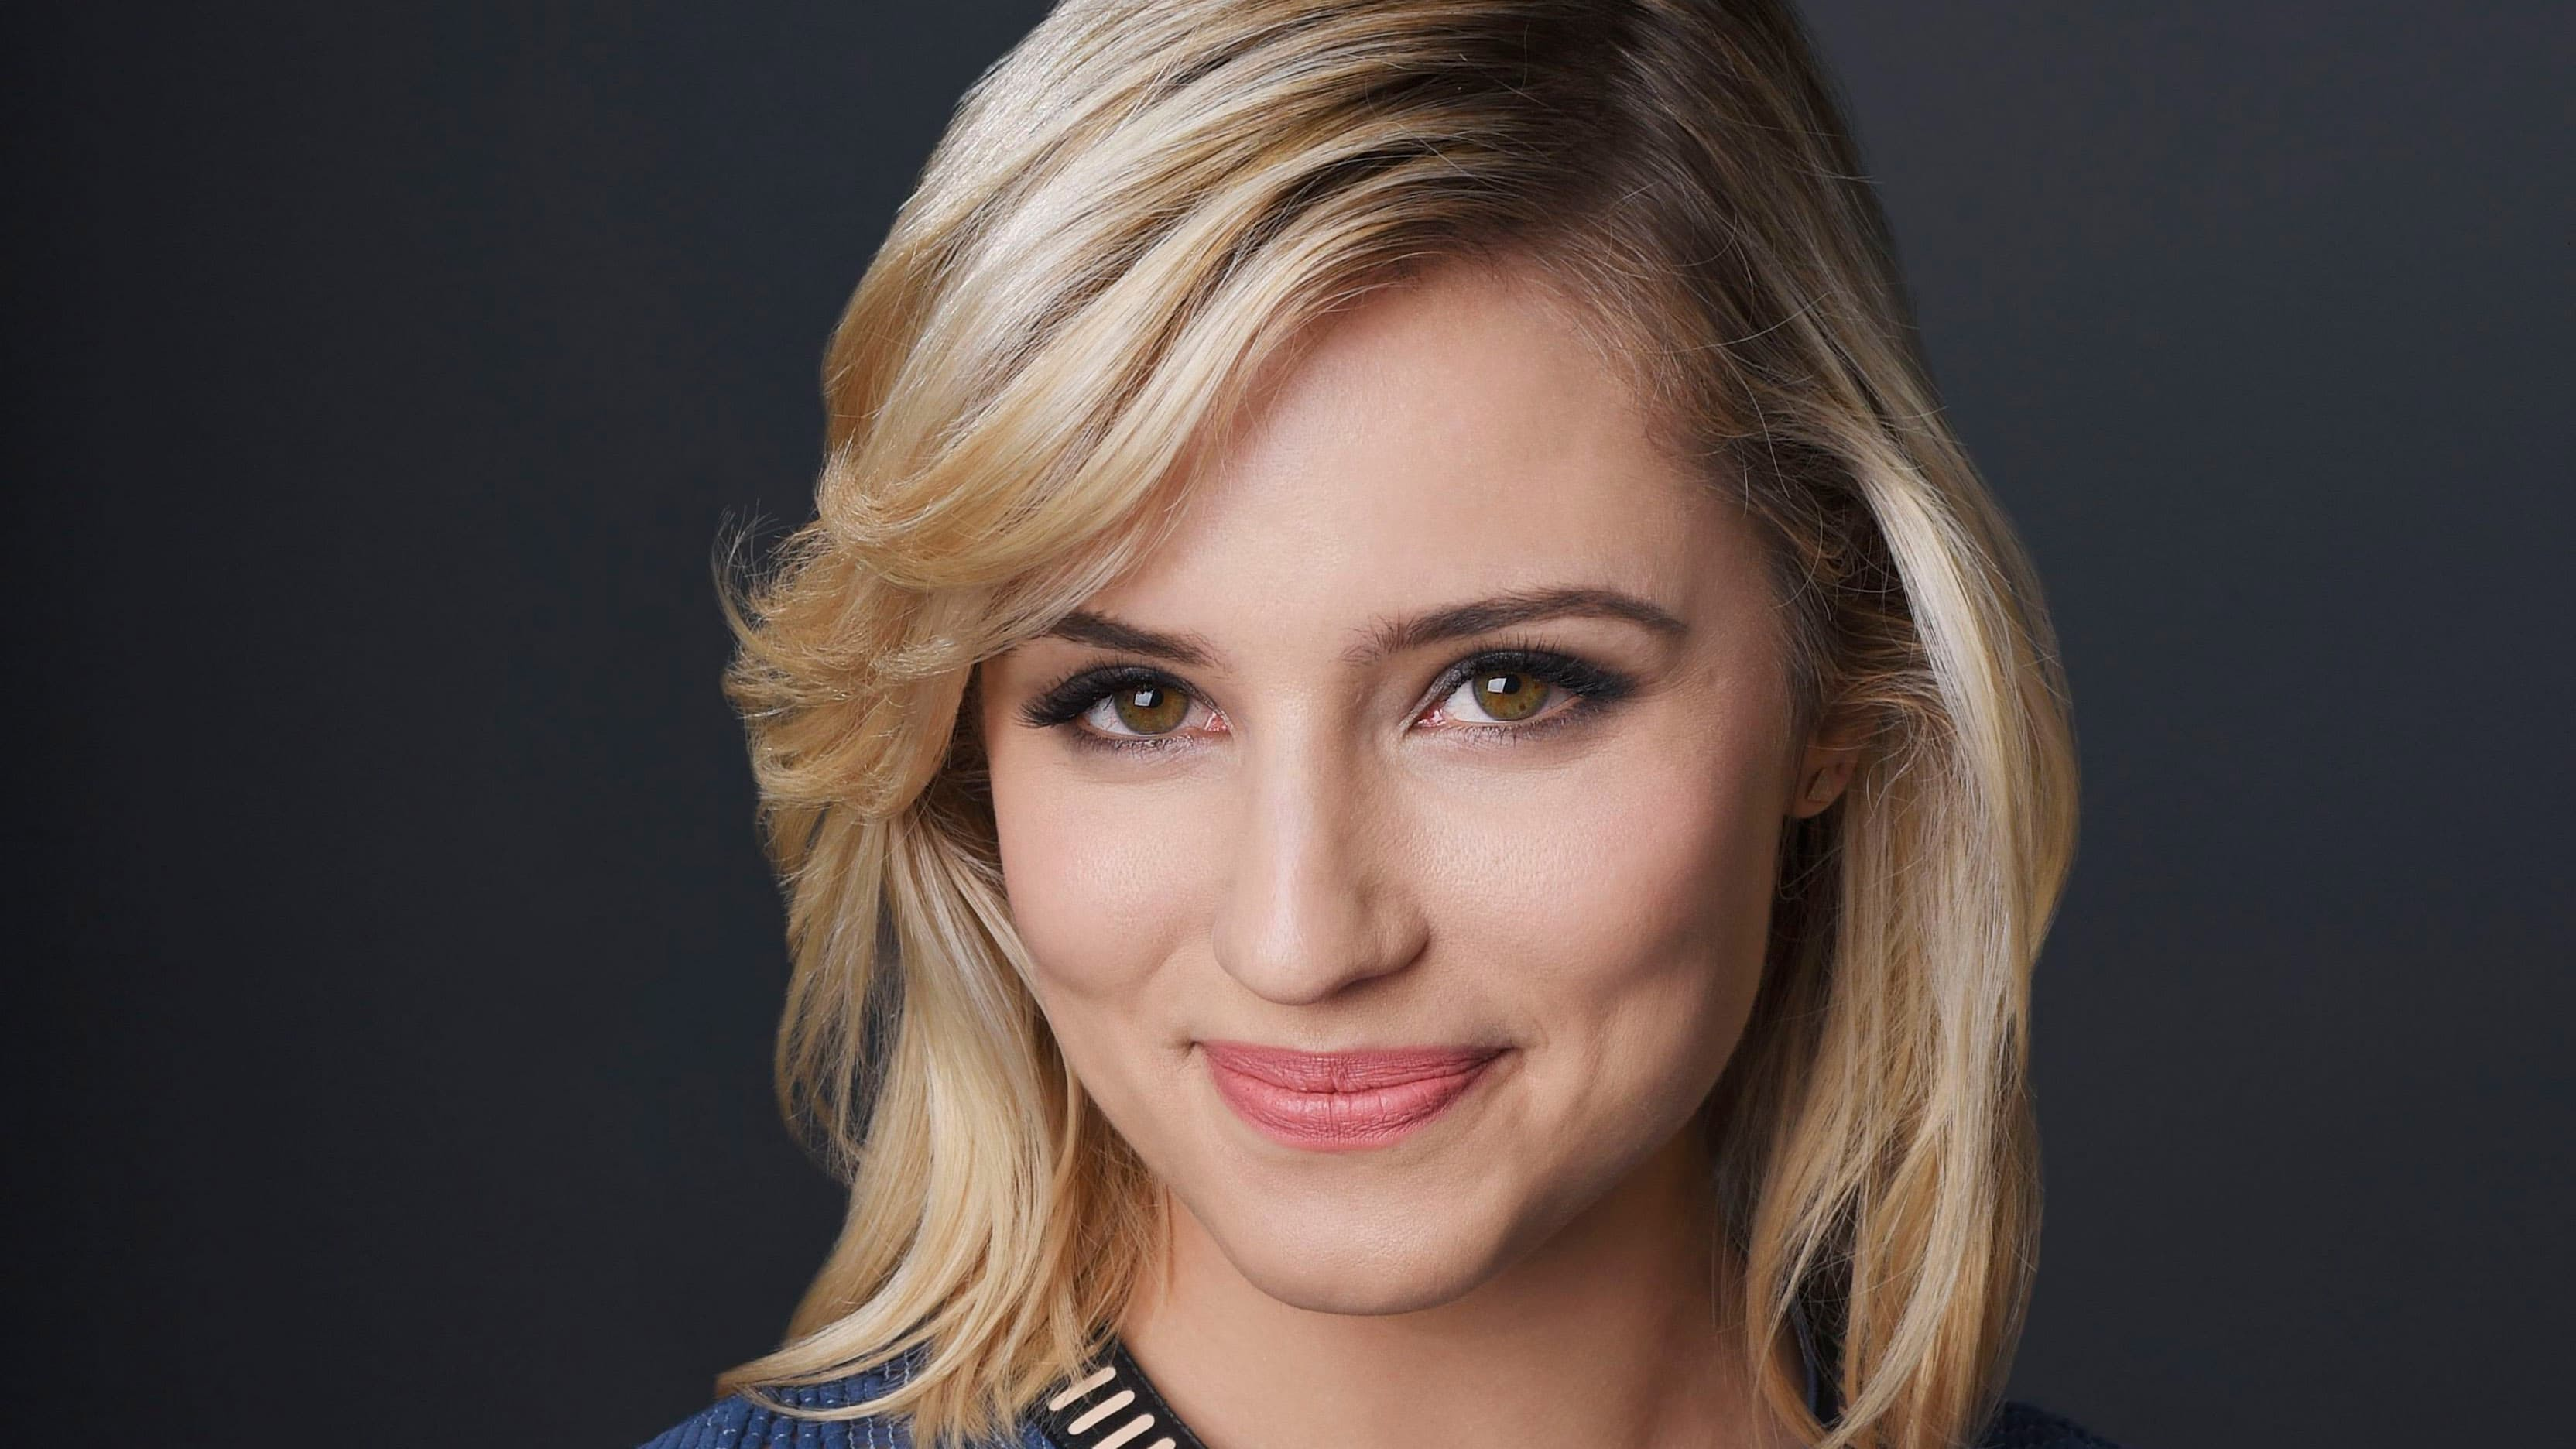 3328x1872 - Dianna Agron Wallpapers 8